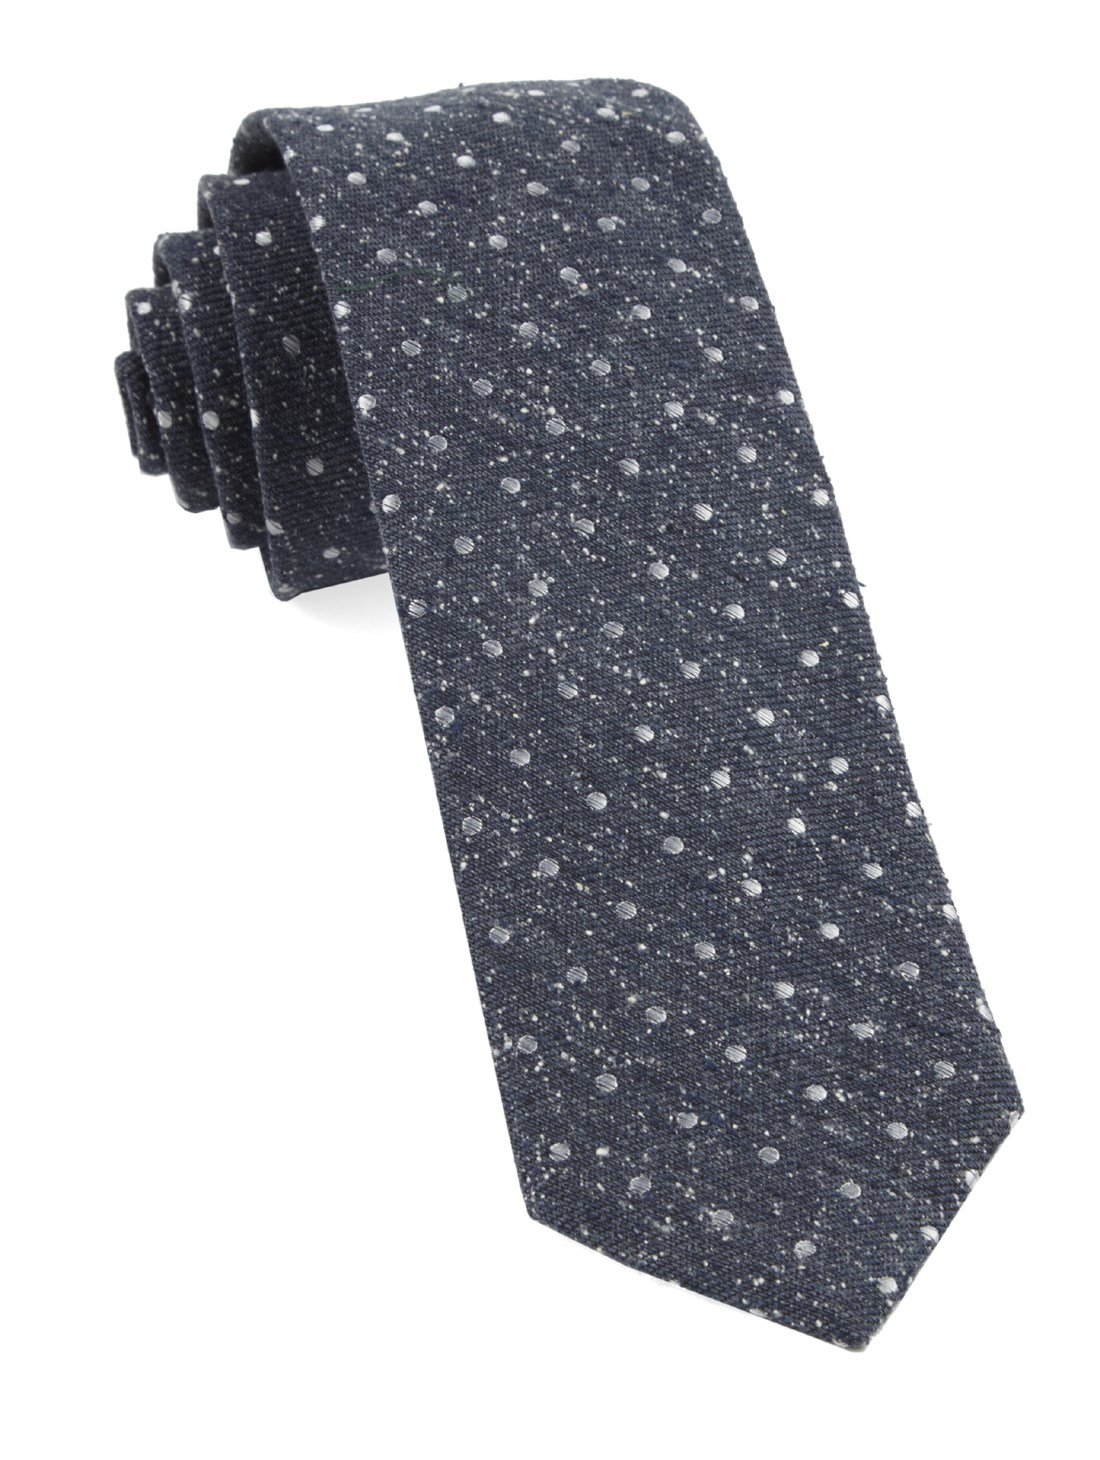 Knotted Dot Tie from The Tie Bar